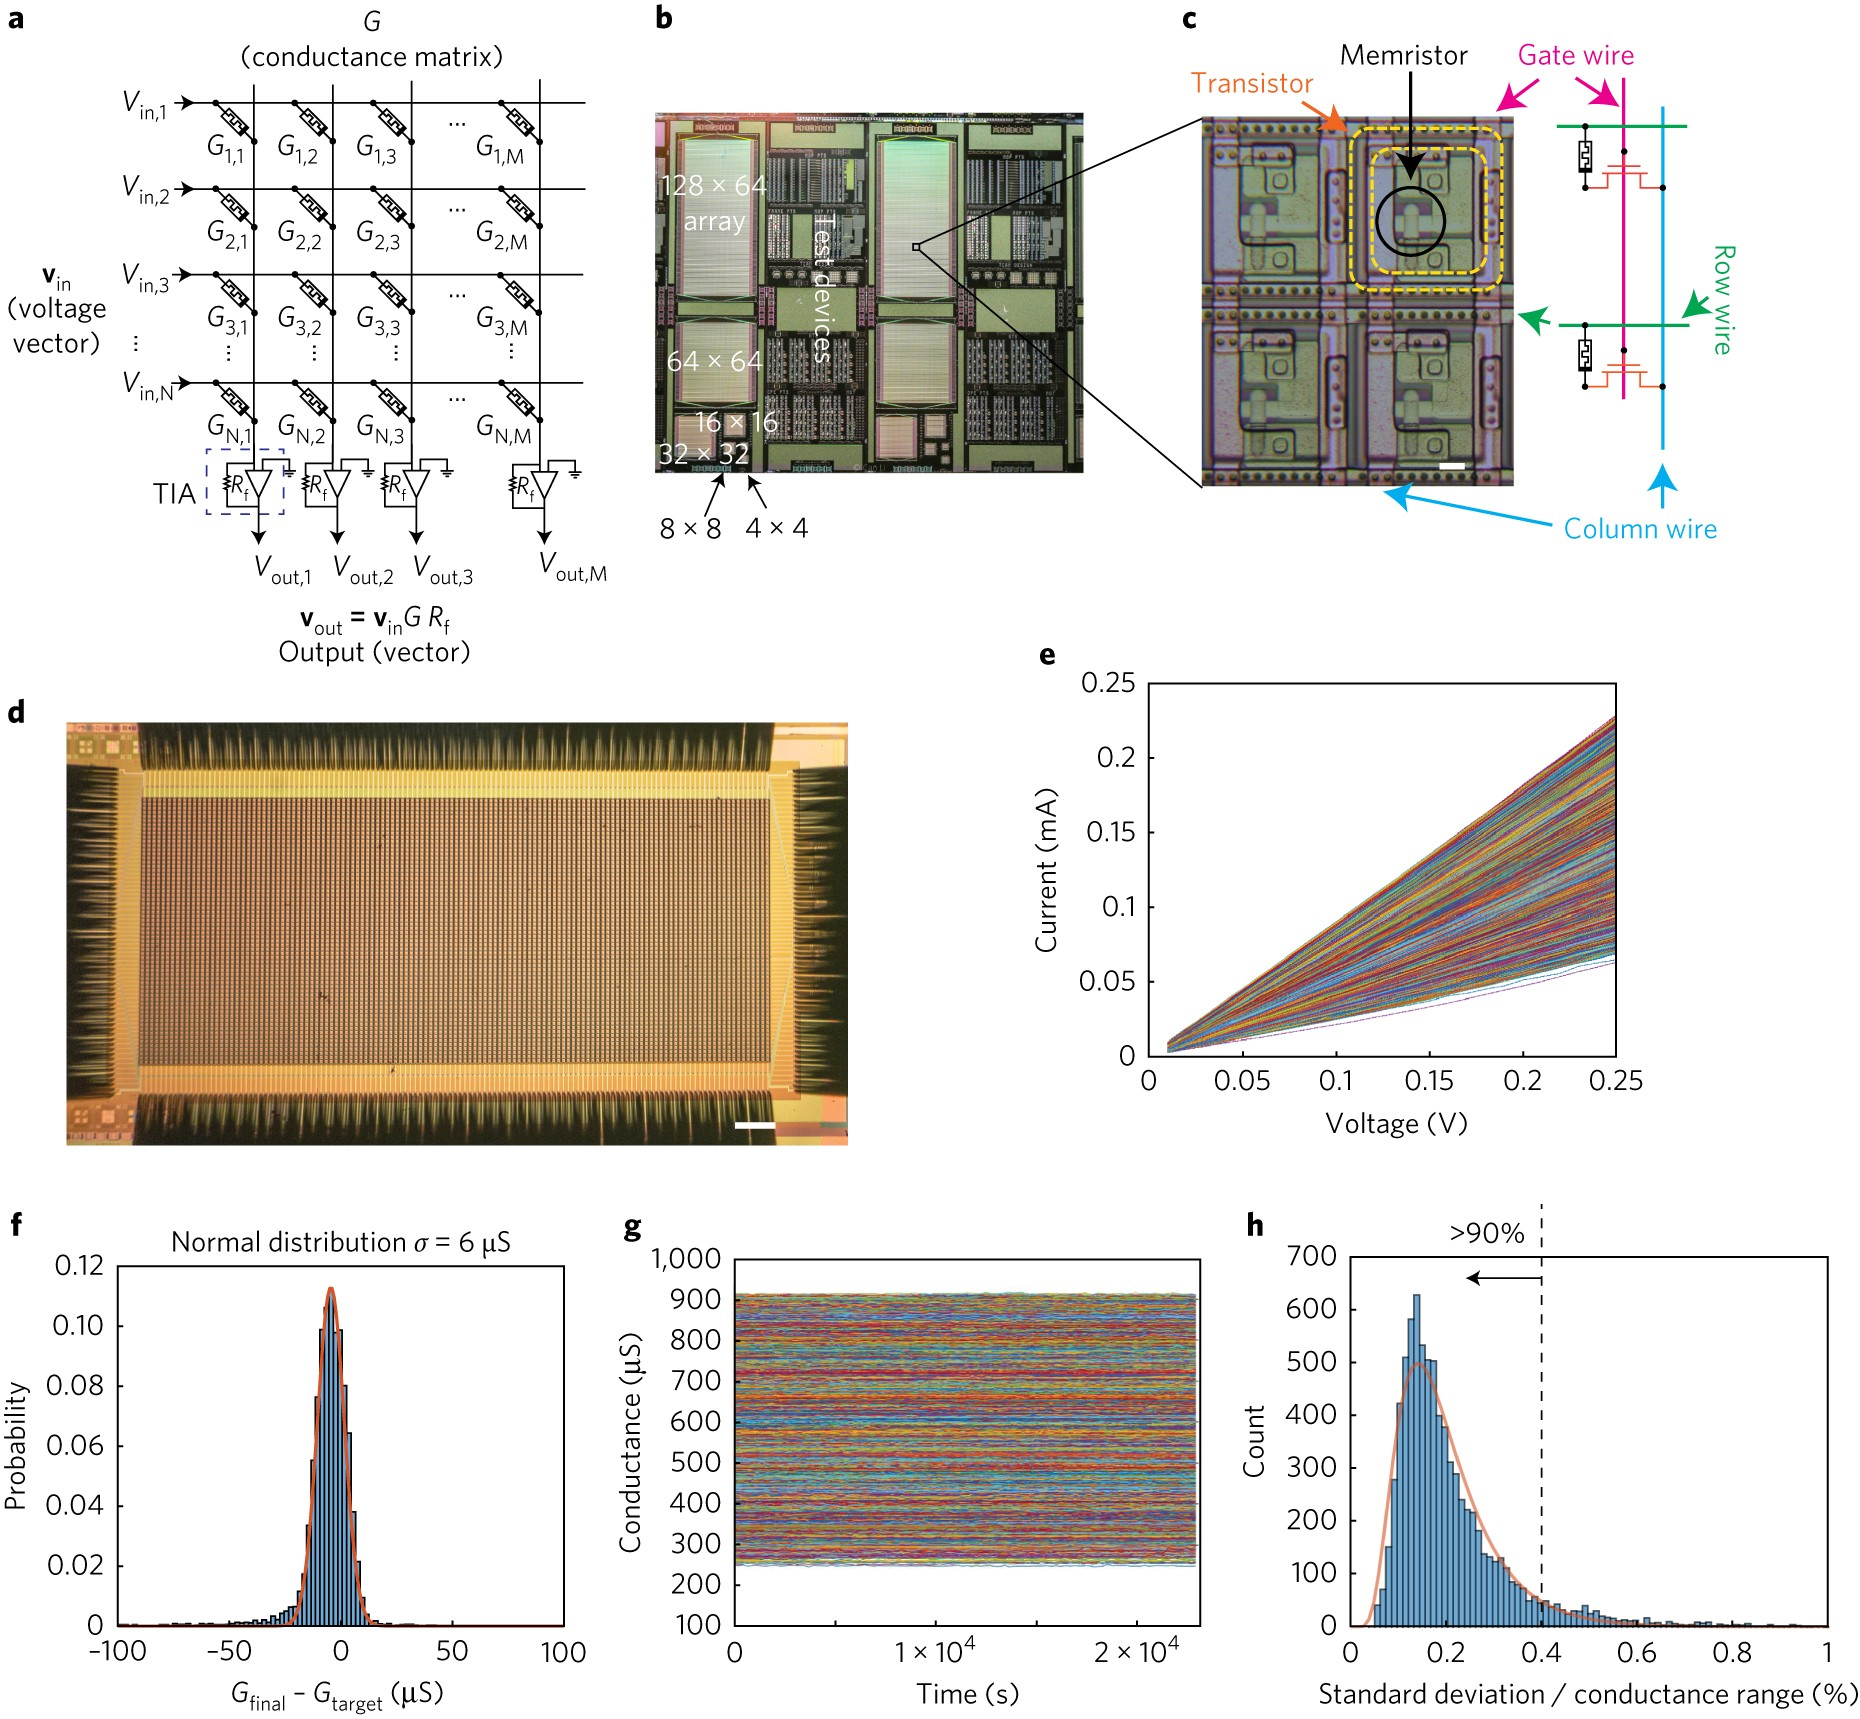 Analogue Signal And Image Processing With Large Memristor Crossbars Analog Digital Integrated Circuits 2009 June Engineering Nature Electronics